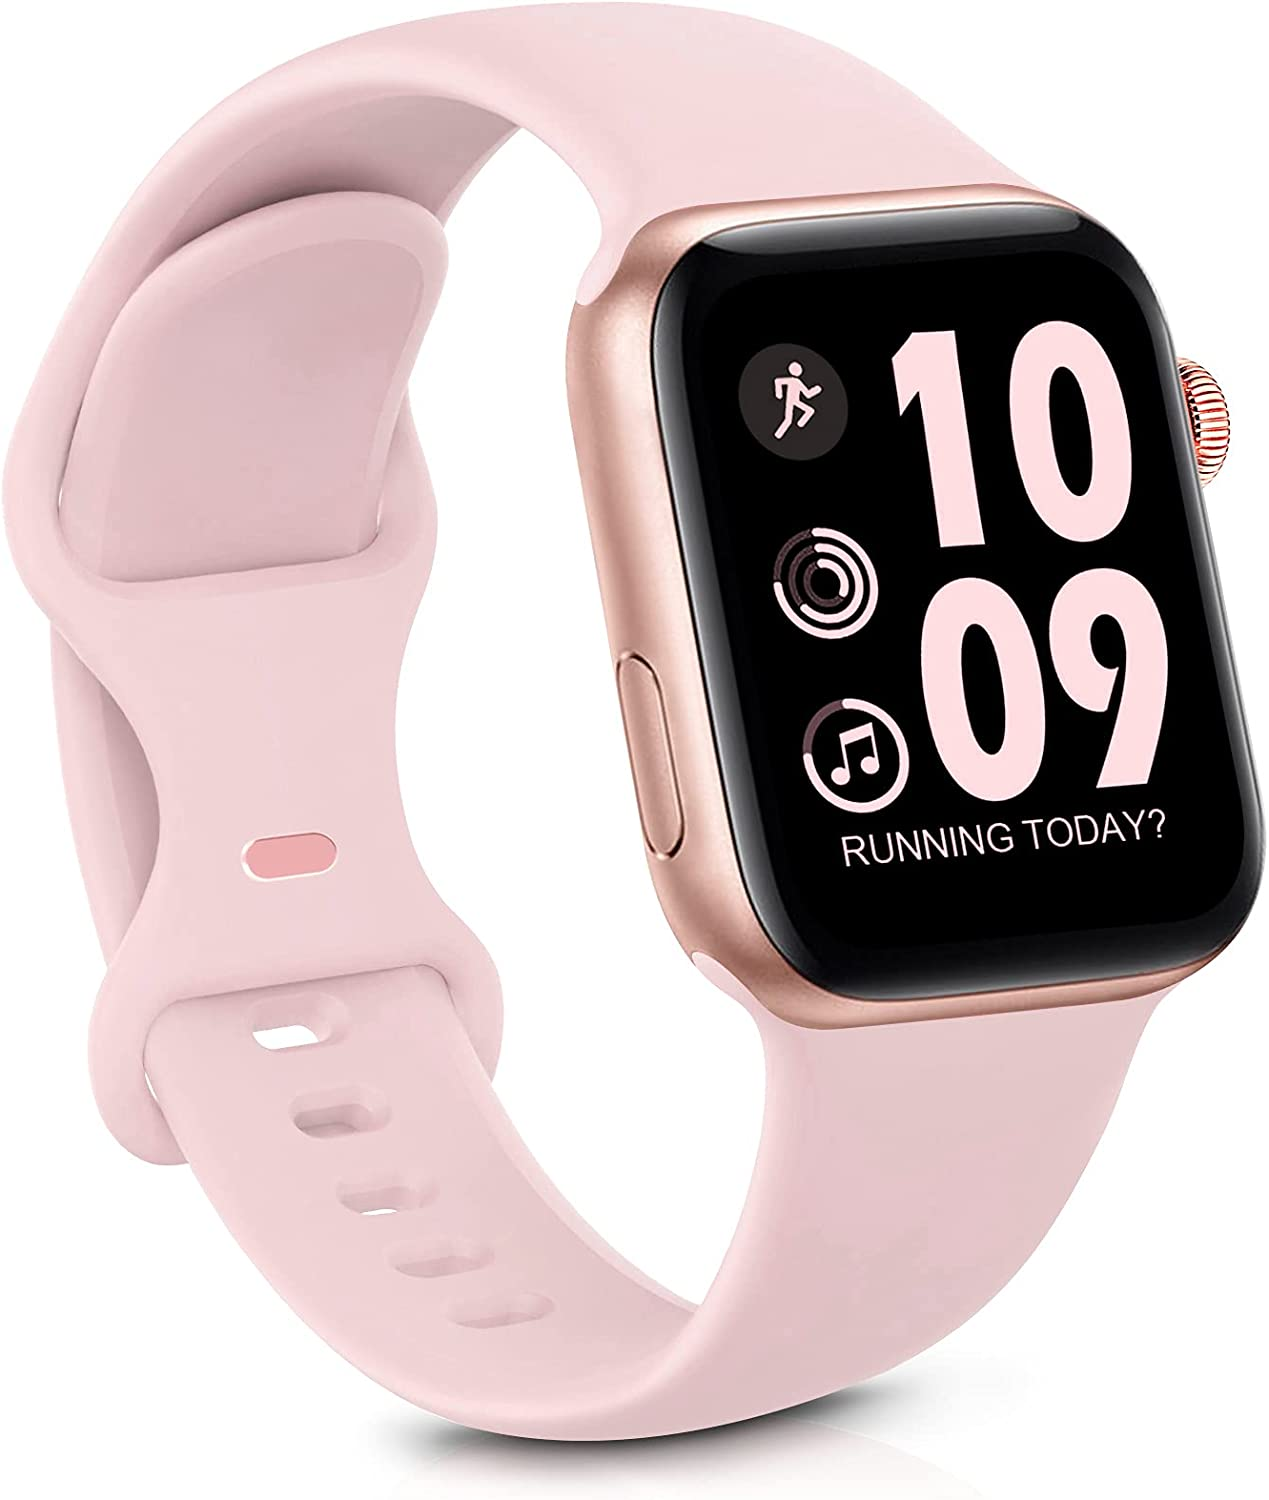 GeekSpark Sport Band Compatible with Apple Watch Band 38mm 40mm for Women Men, Soft Silicone Replacement Strap Band for iwatch SE/Series 6/5/4/3/2/1 Barbie Pink 38mm/40mm S/M